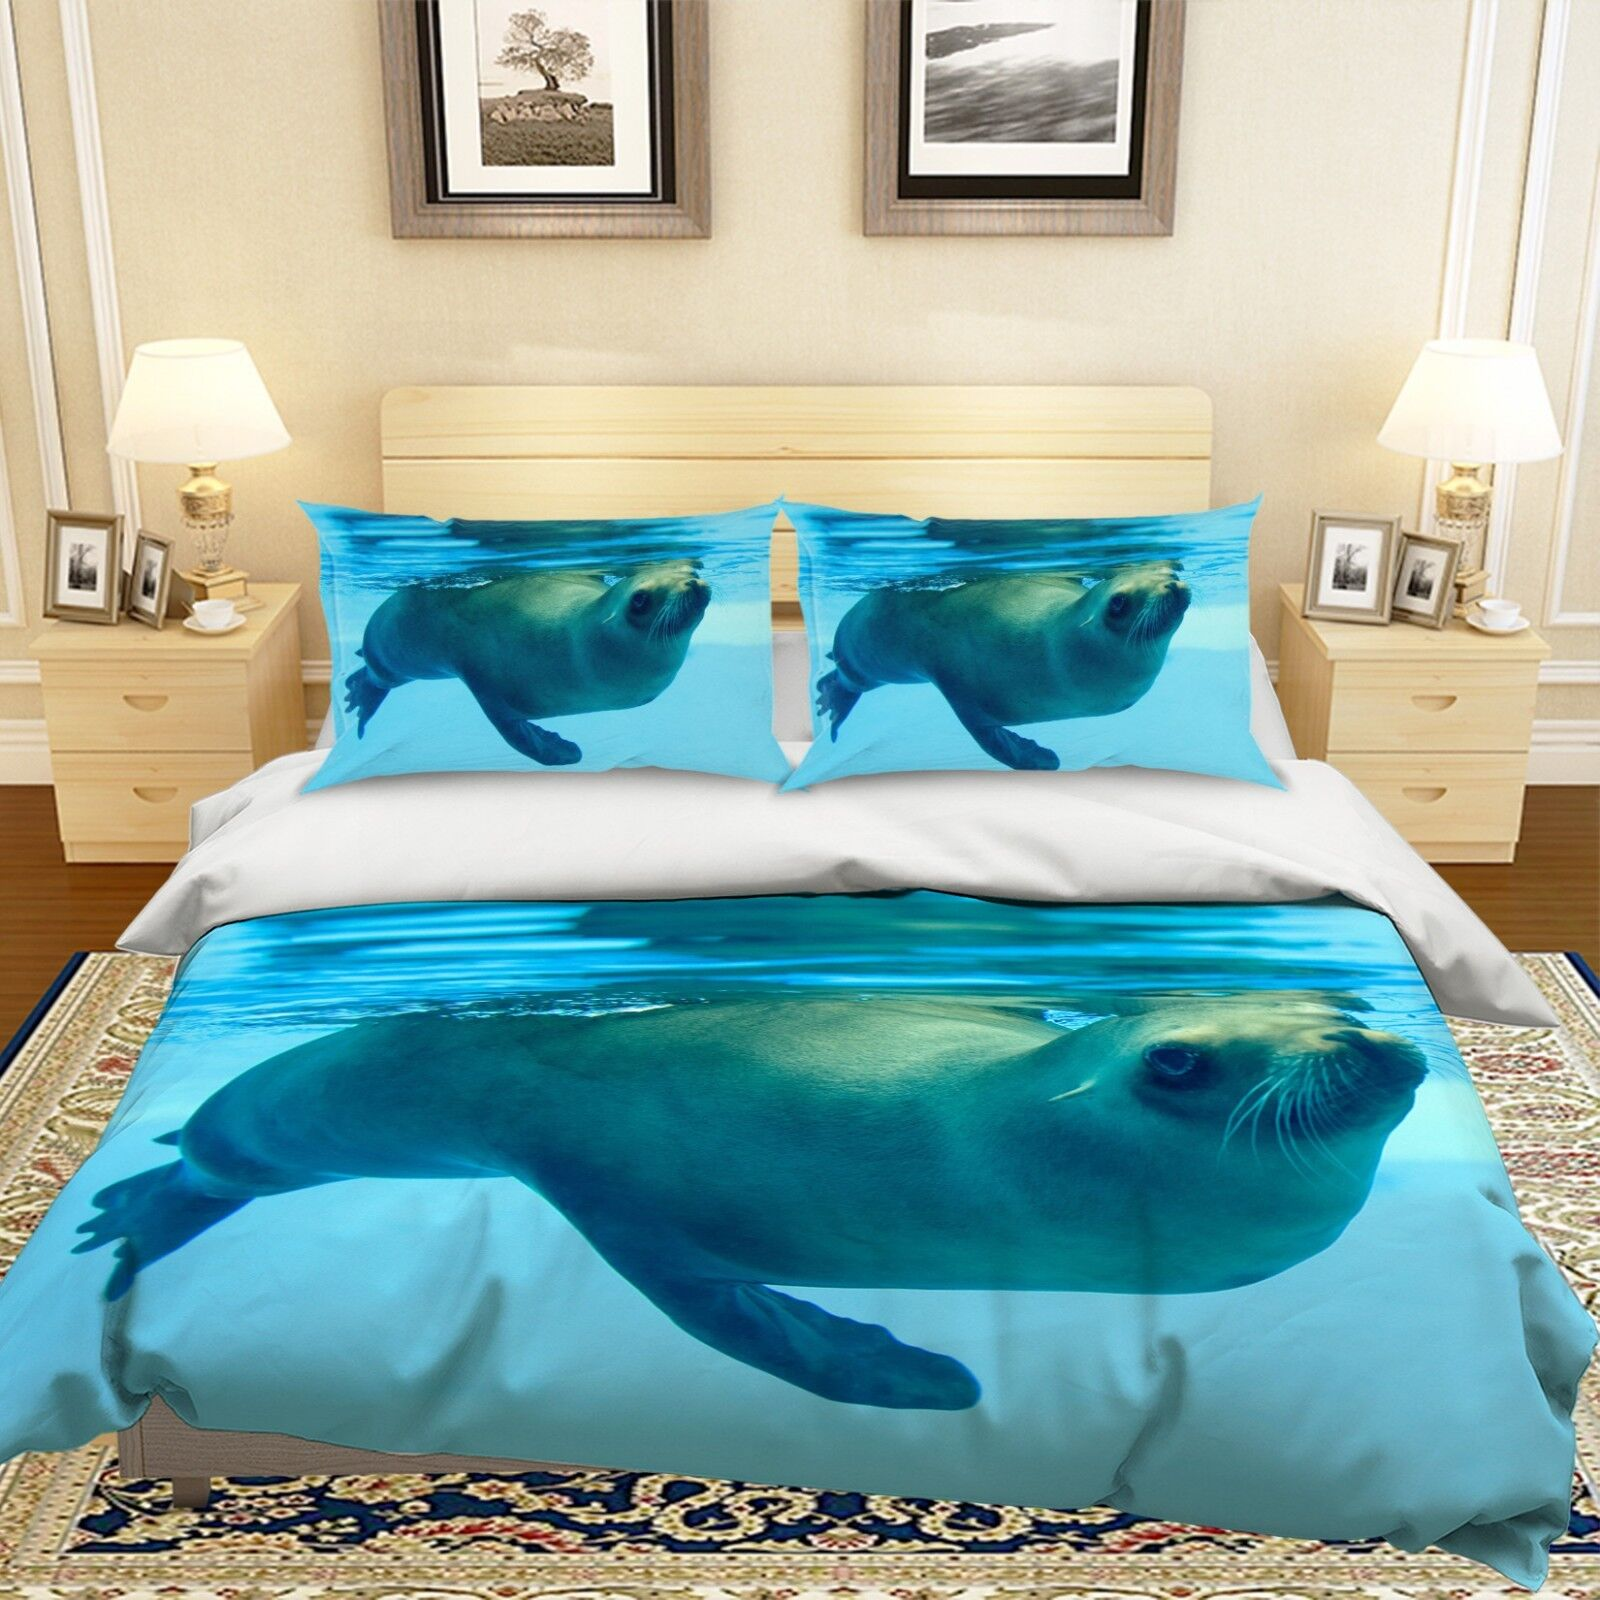 online shopping and fashion store 3D Sea Lion 09 09 09 Bed